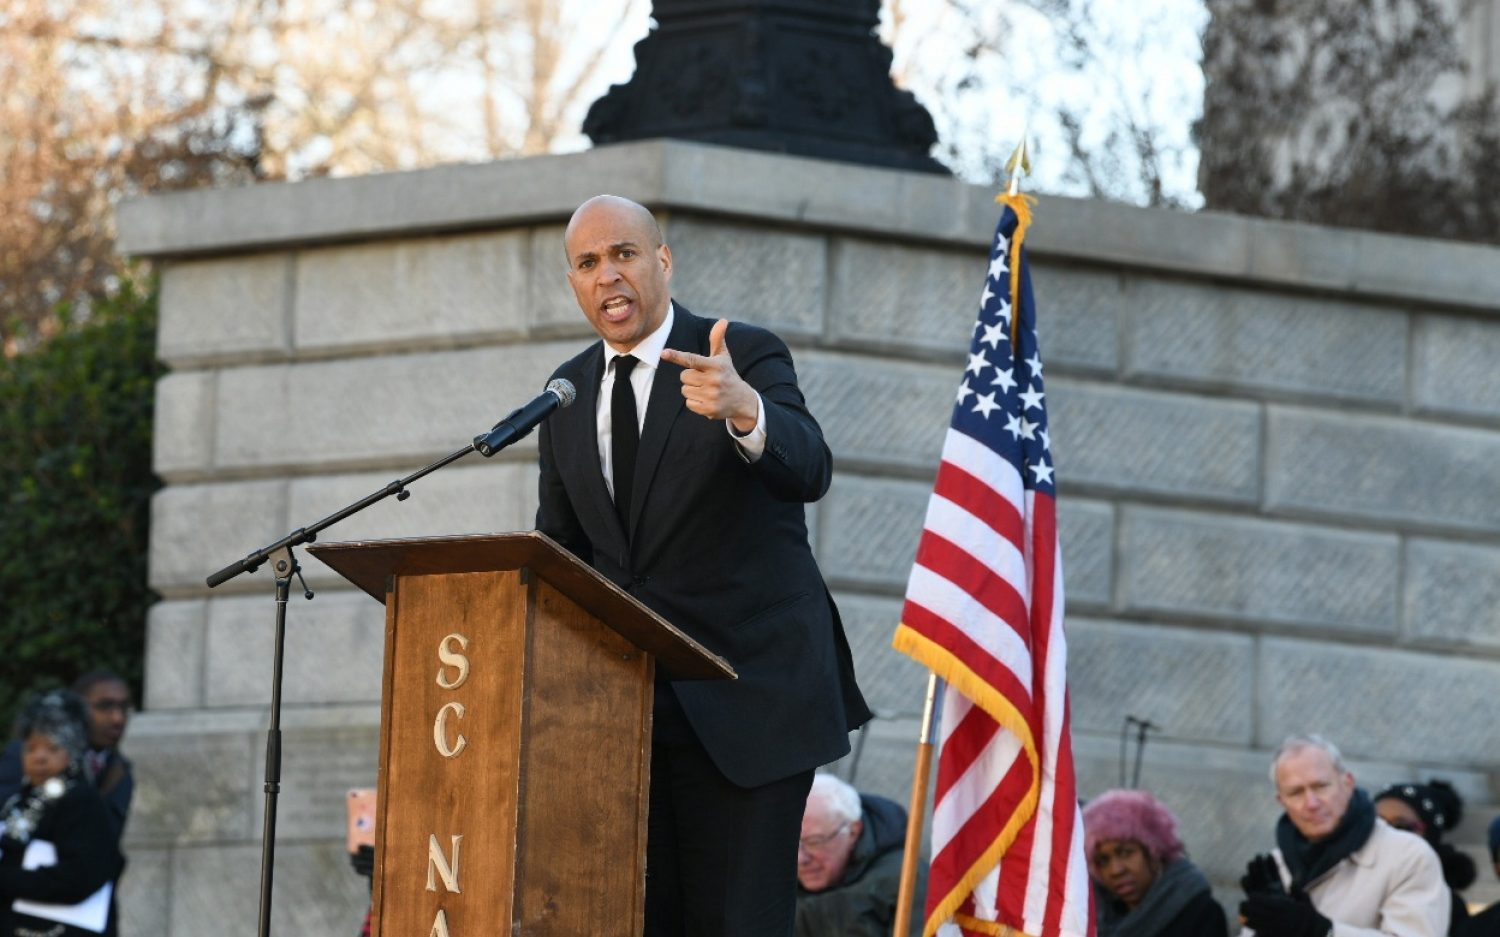 Booker joins crowded 2020 Democratic field